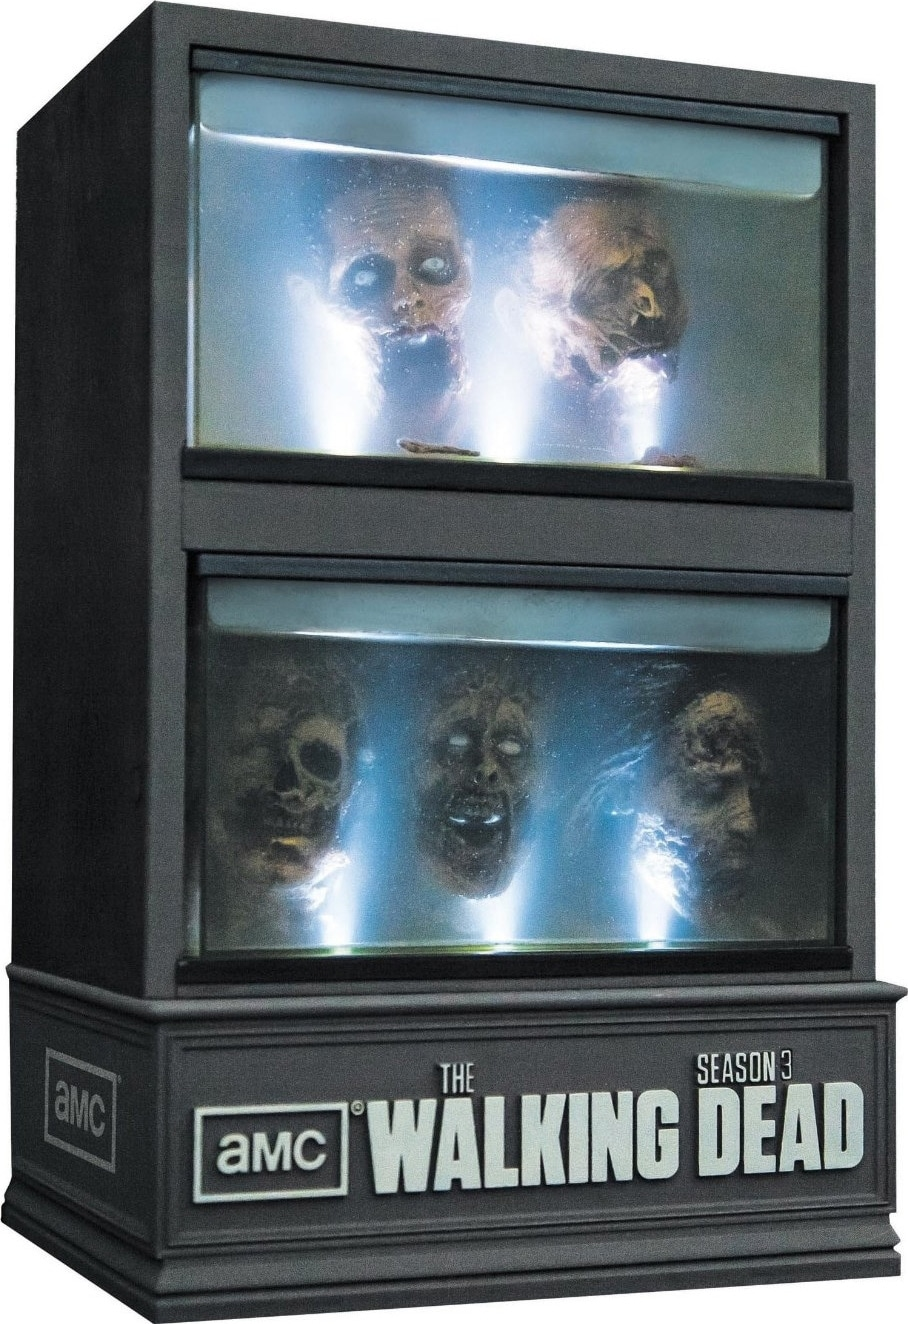 The Walking Dead Season 3 (Limited Edition) (Blu-ray Disc) 11090605